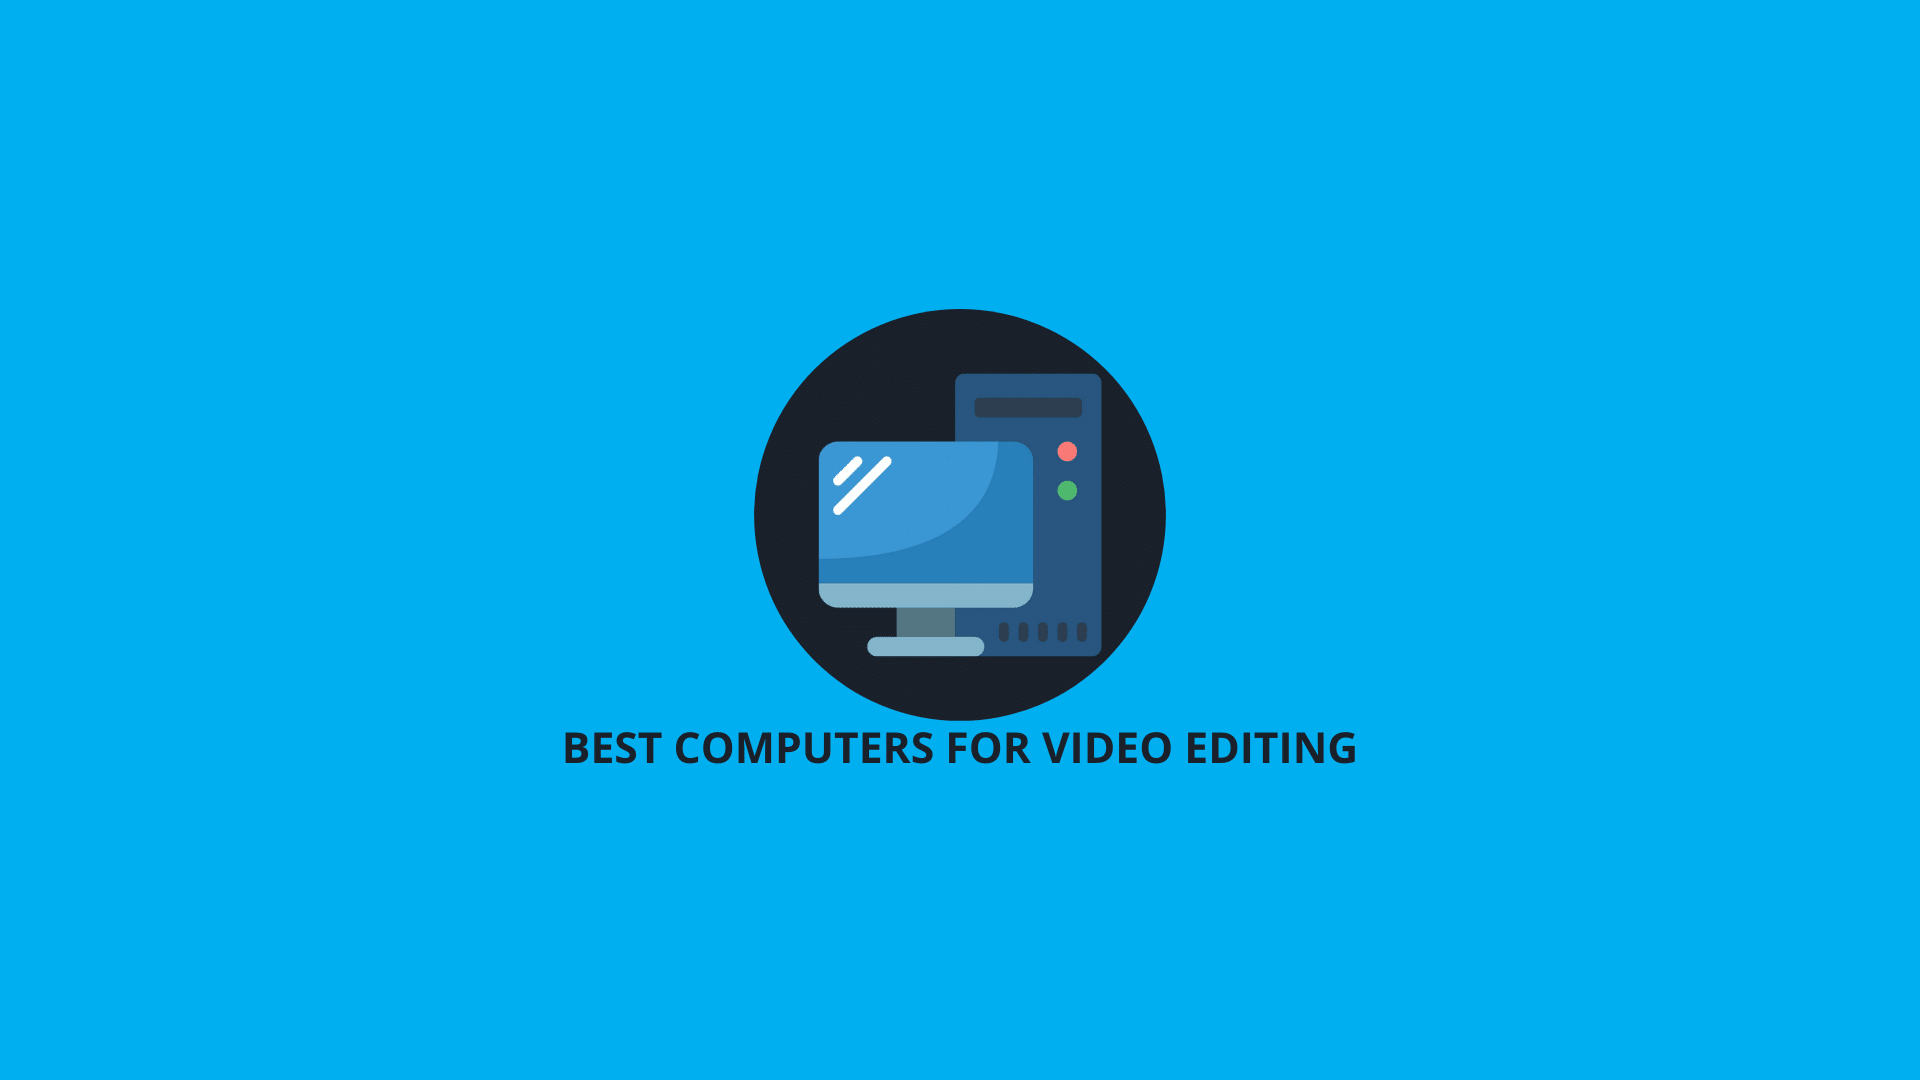 Best Computers for Video Editing